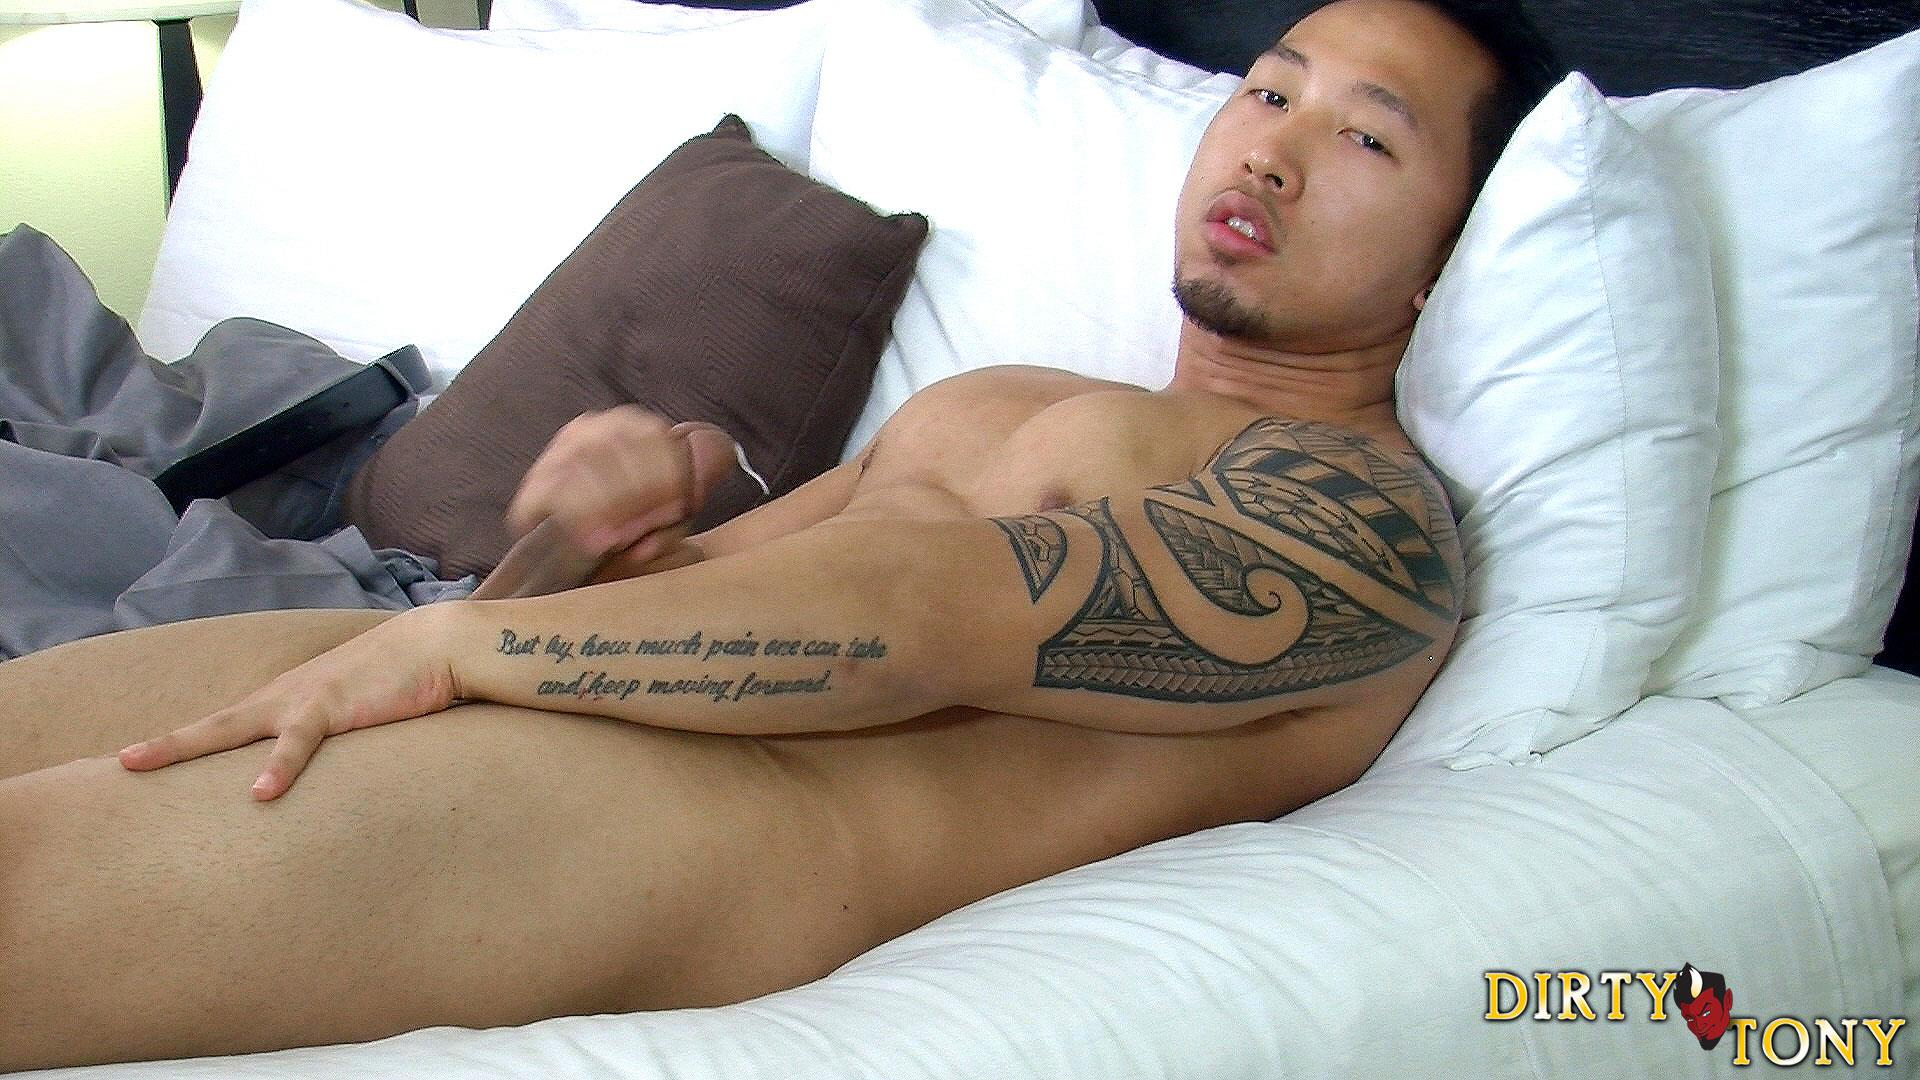 Dirty-Tony-Ryan-Allen-Asian-Guy-In-Suit-With-A-Big-Asian-Cock-Jerk-Off-Amateur-Gay-Porn-15 Amateur Asian Guy In Business Suit Stroking His Huge Asian Cock